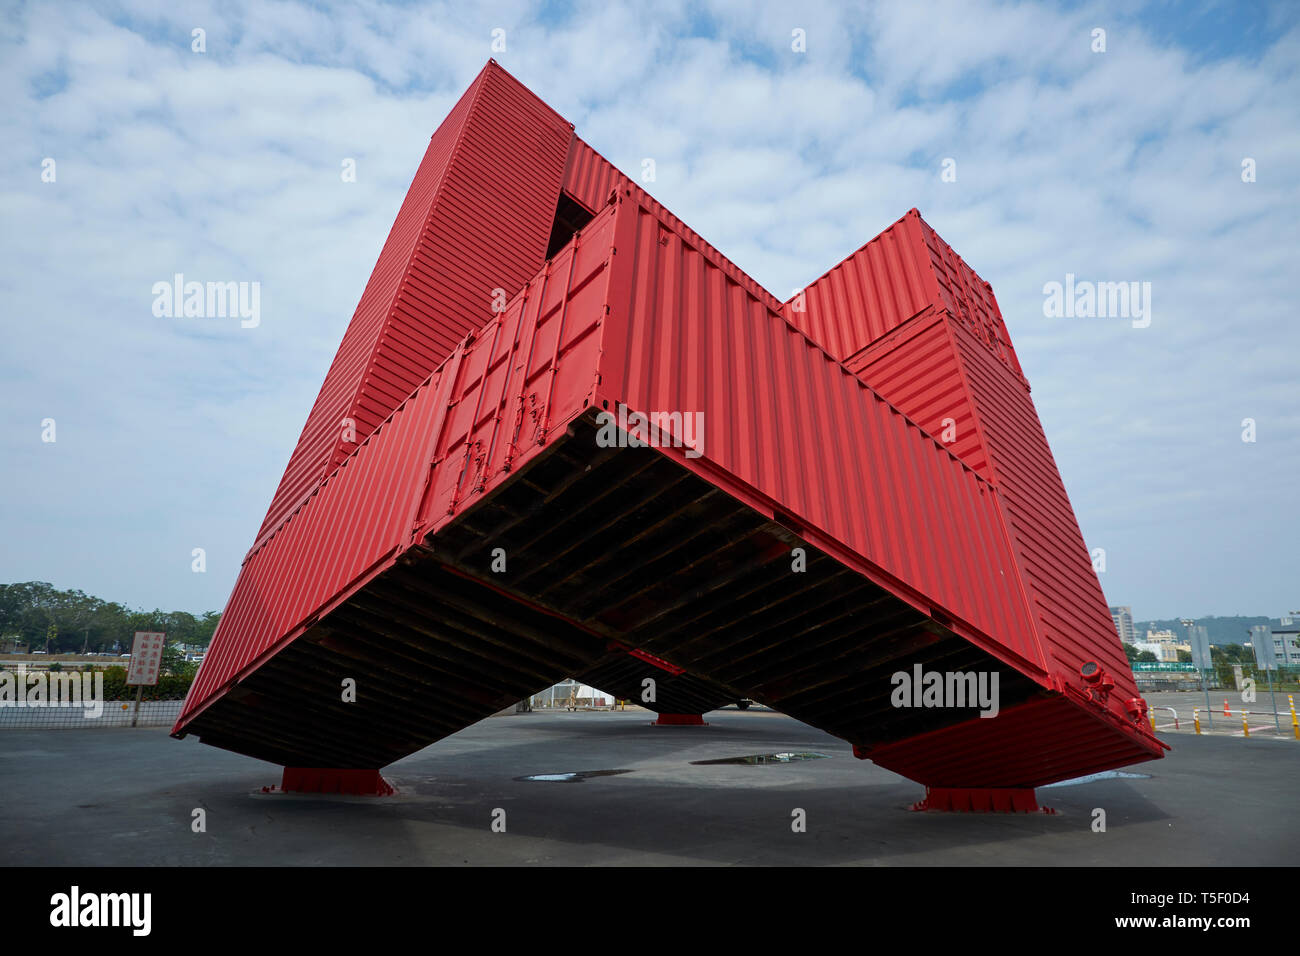 Shipping Container Sculpture High Resolution Stock Photography And Images Alamy